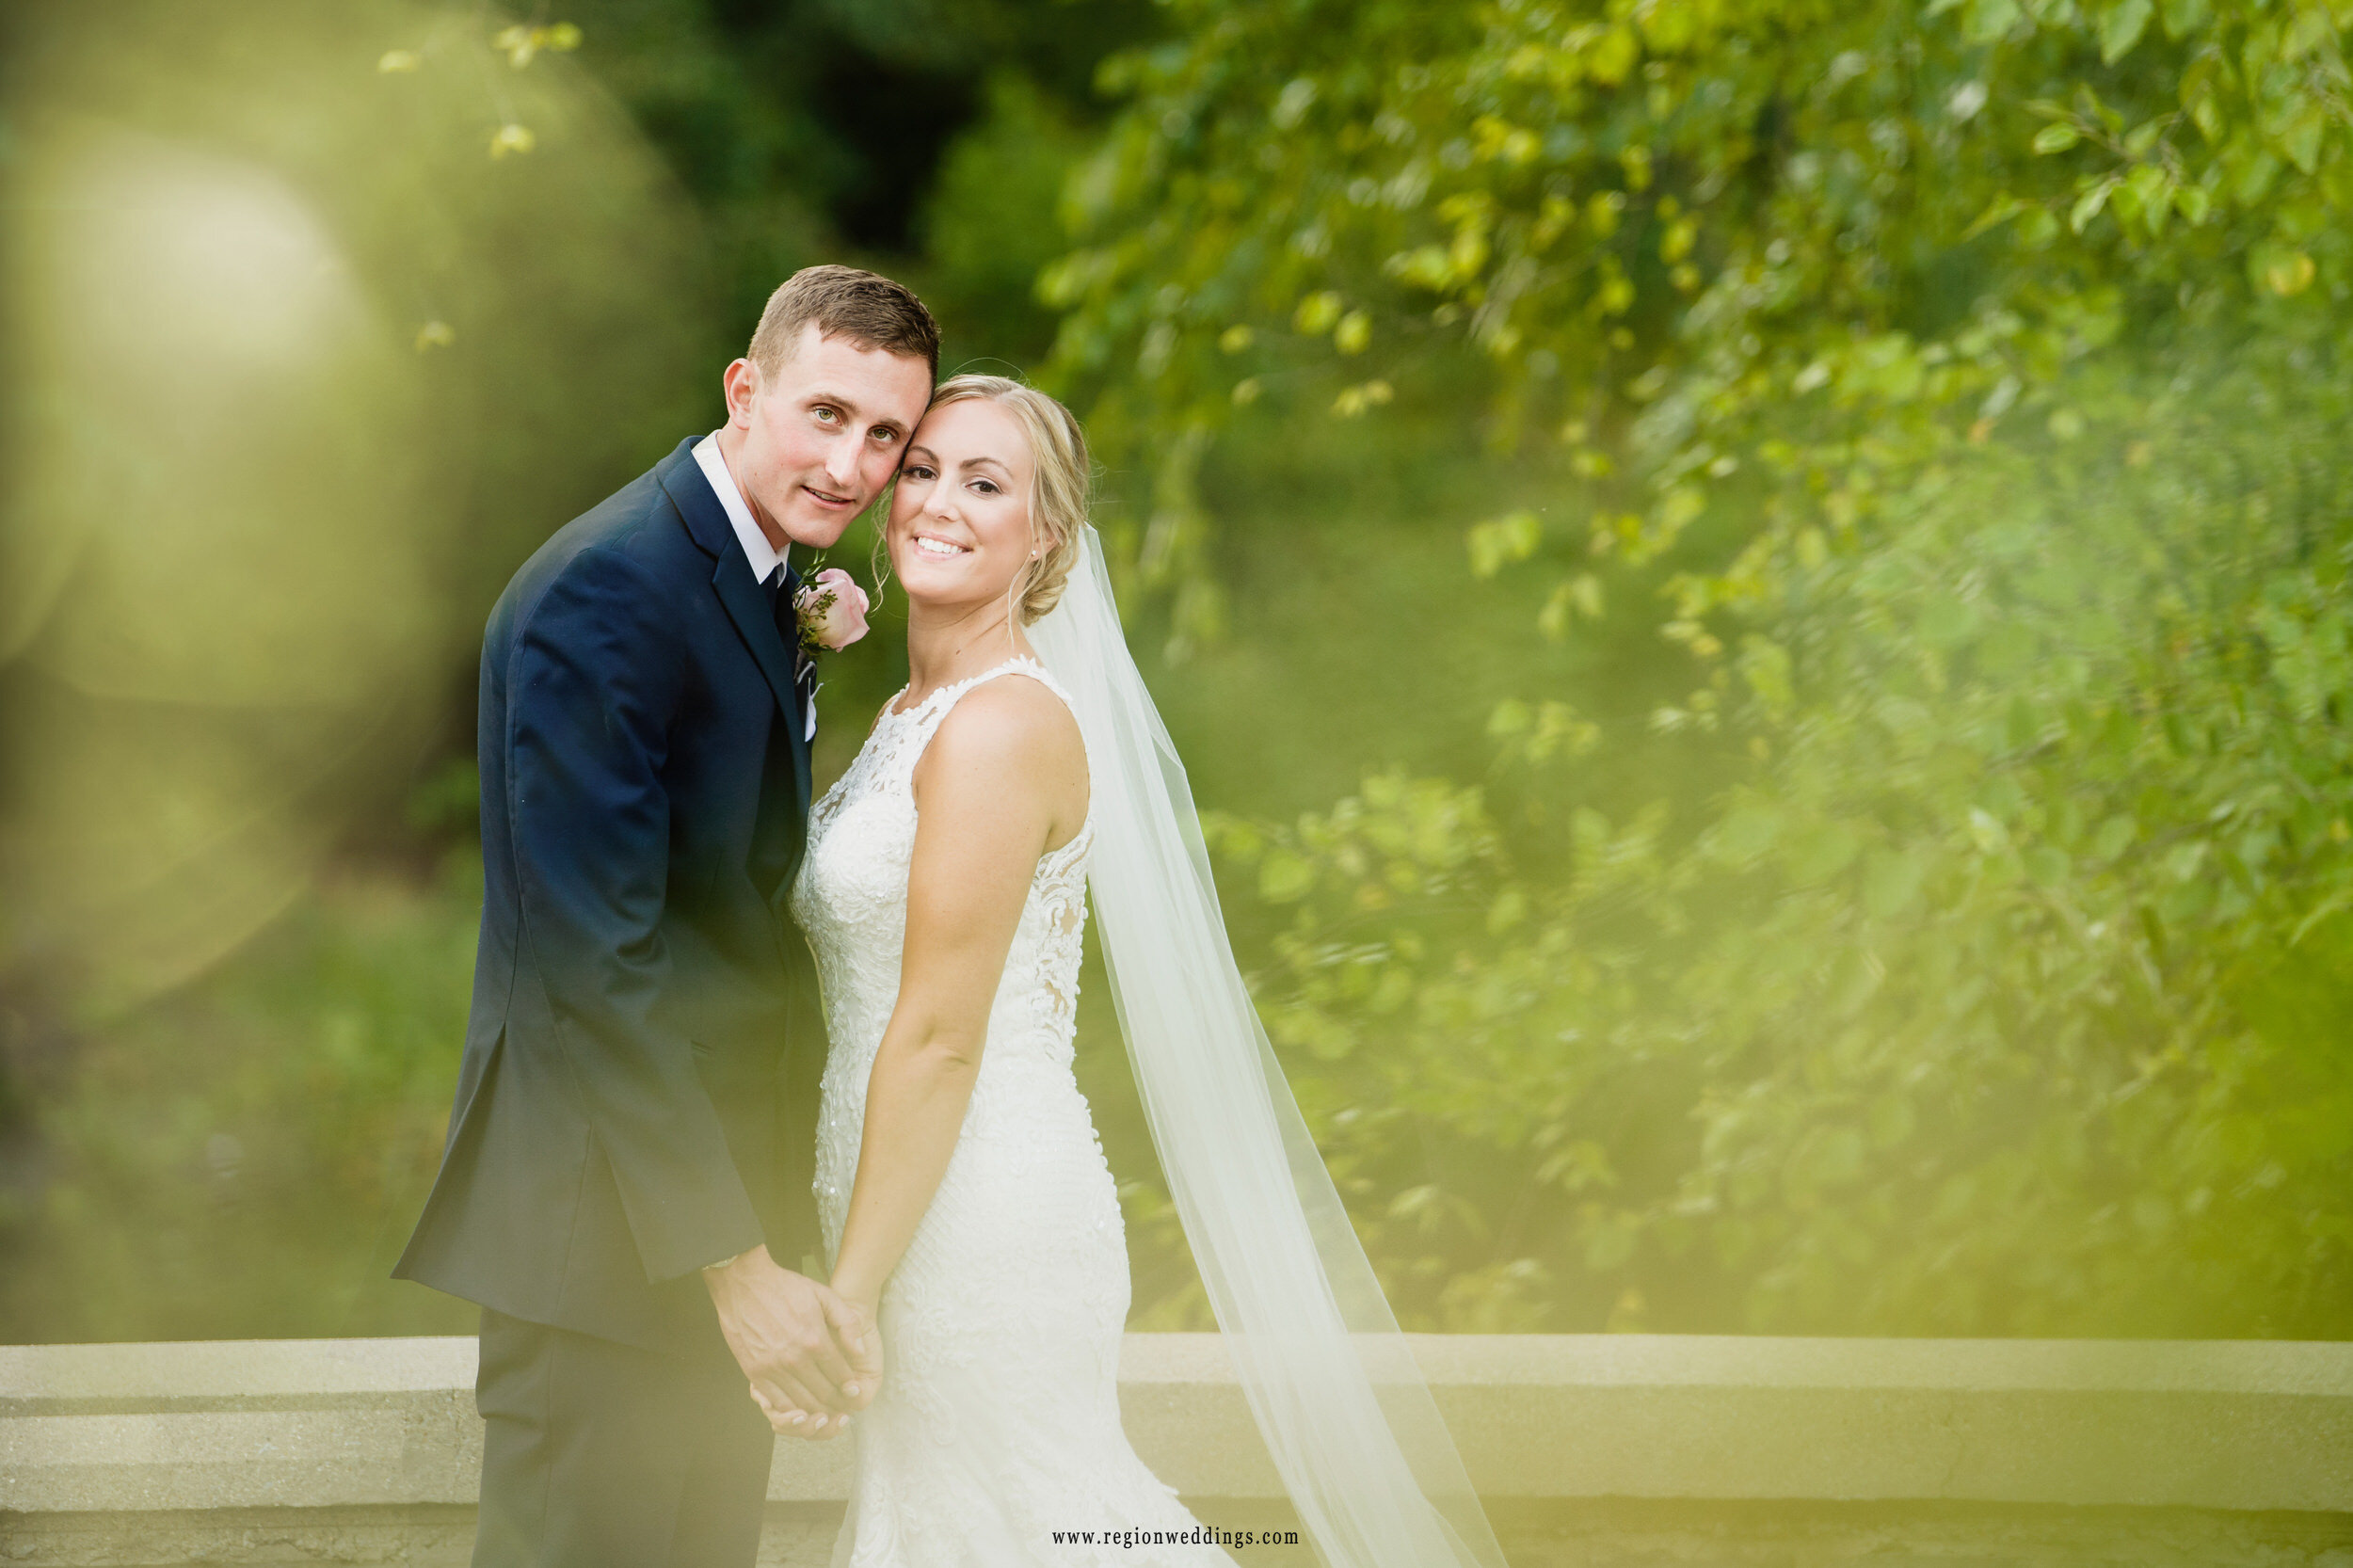 A portrait of the bride and groom at their September wedding at Aberdeen Manor.